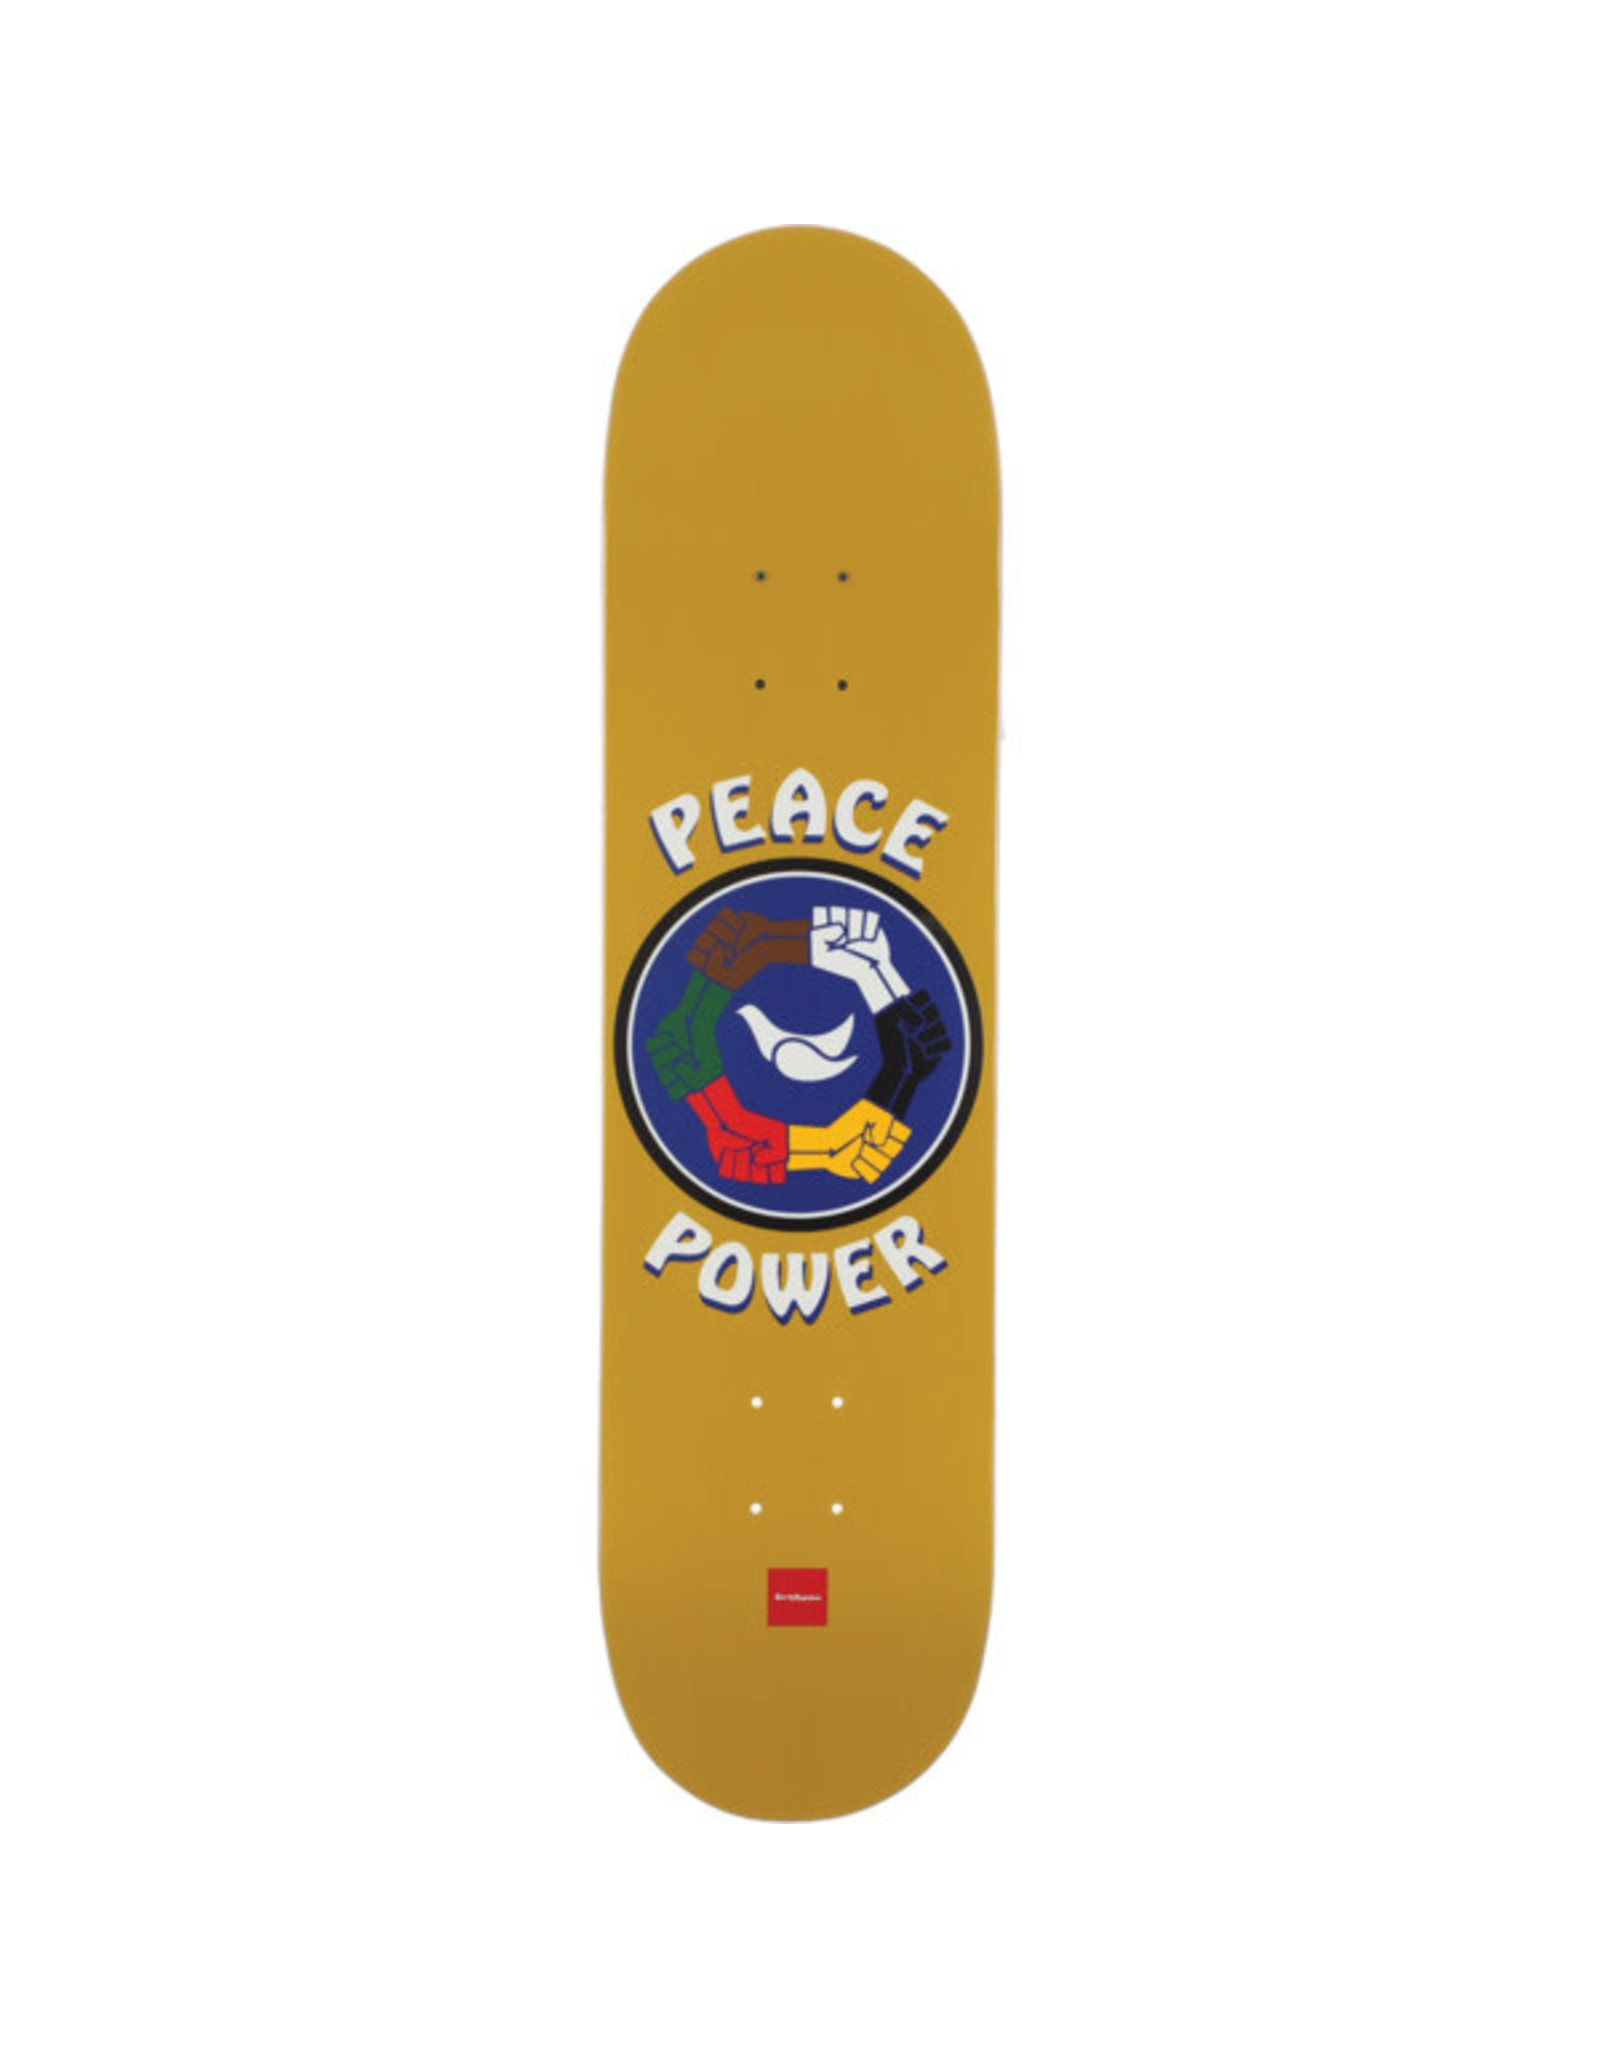 Chocolate K.ANDERSON PEACE POWER DECK-8.0